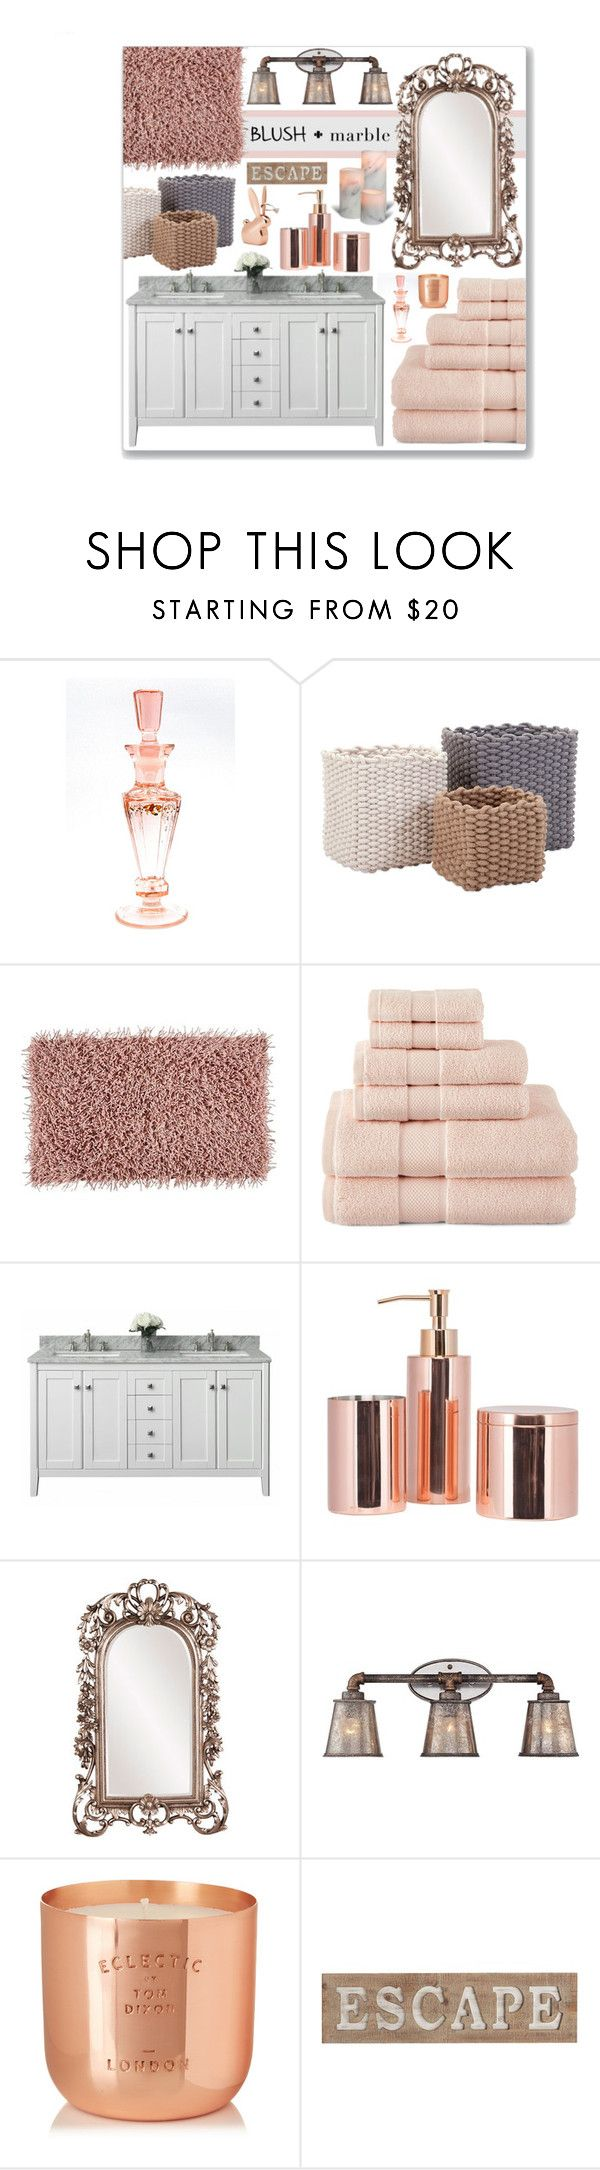 """Blush & Marble Bathroom"" by leanne-mcclean ❤ liked on Polyvore featuring interior, interiors, interior design, home, home decor, interior decorating, Aquanova, Liz Claiborne, Howard Elliott and Pacific Coast"